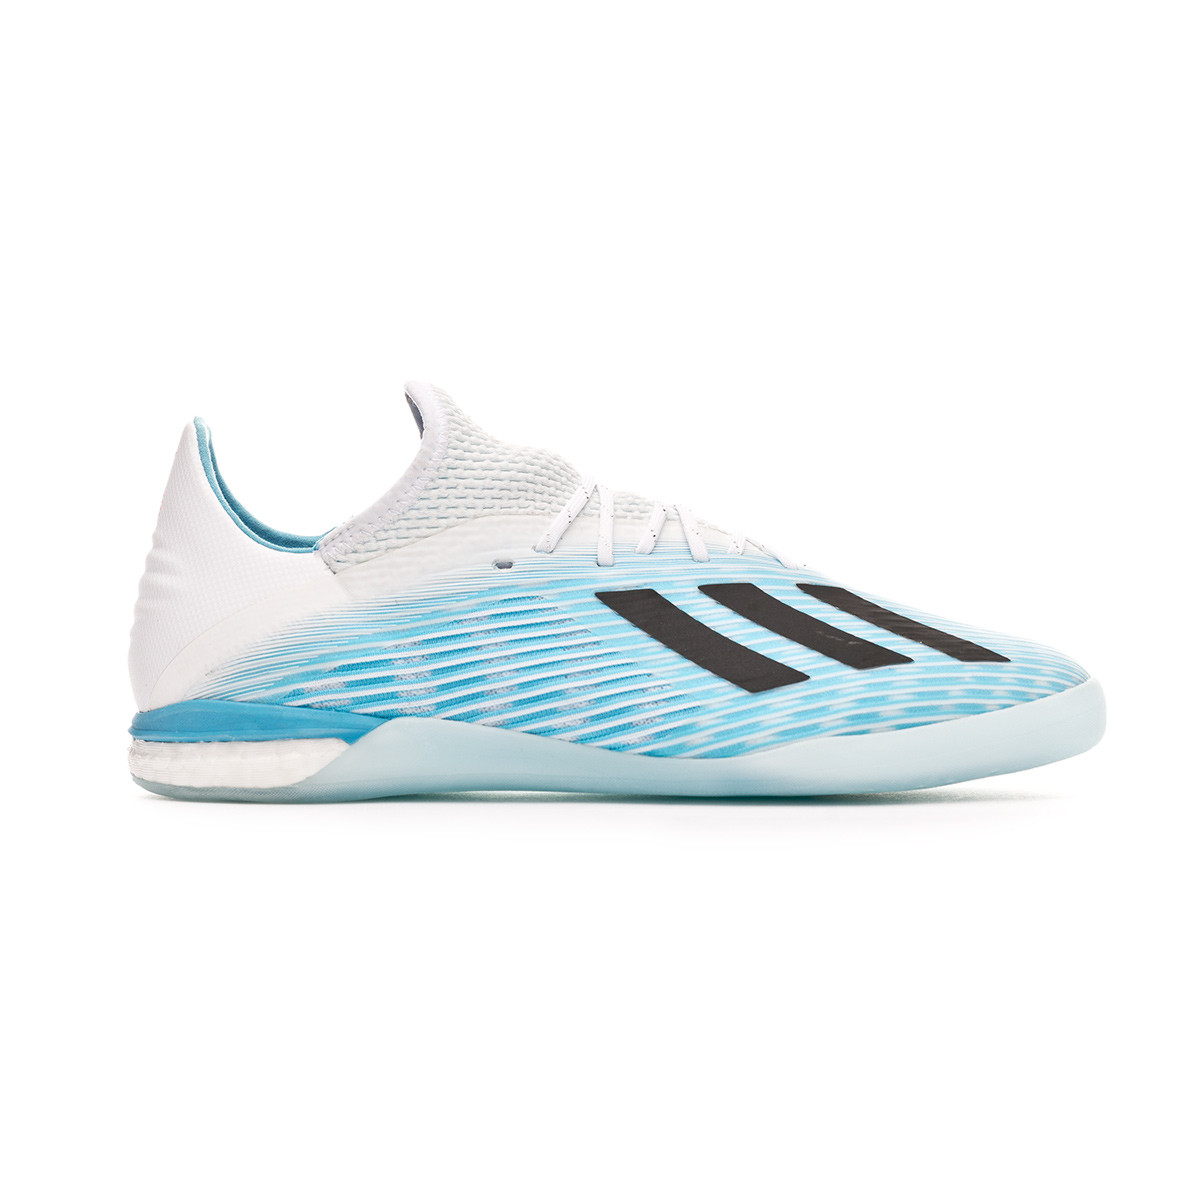 583d4543 Futsal Boot adidas X 19.1 IN Bright cyan-Core black-Shock pink - Football  store Fútbol Emotion